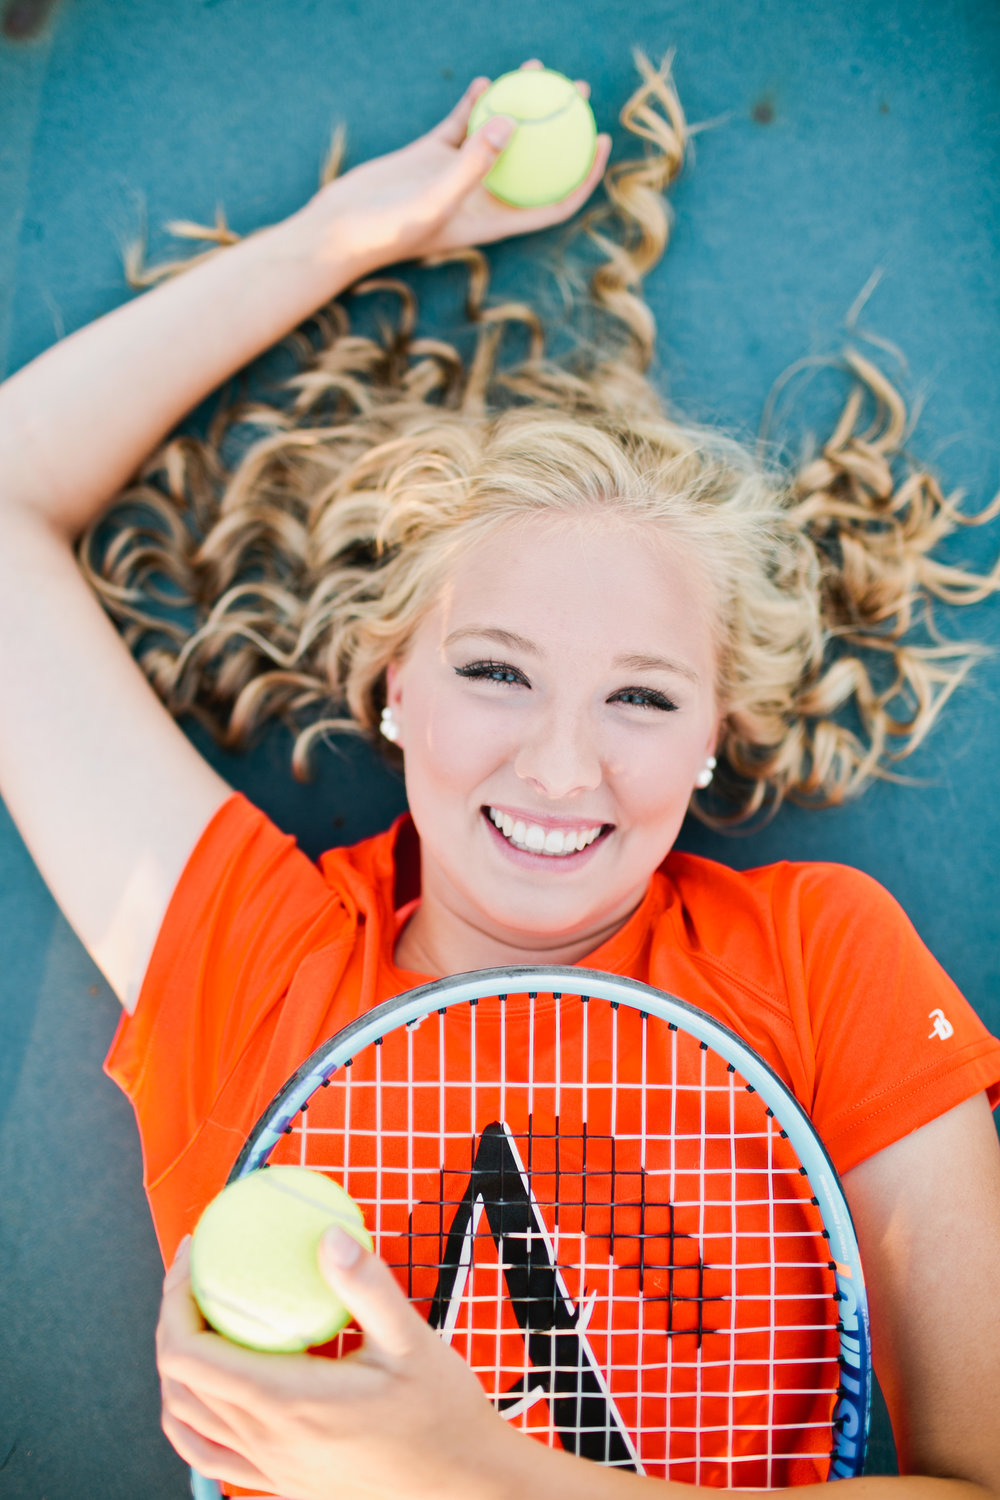 Ames high school senior photos